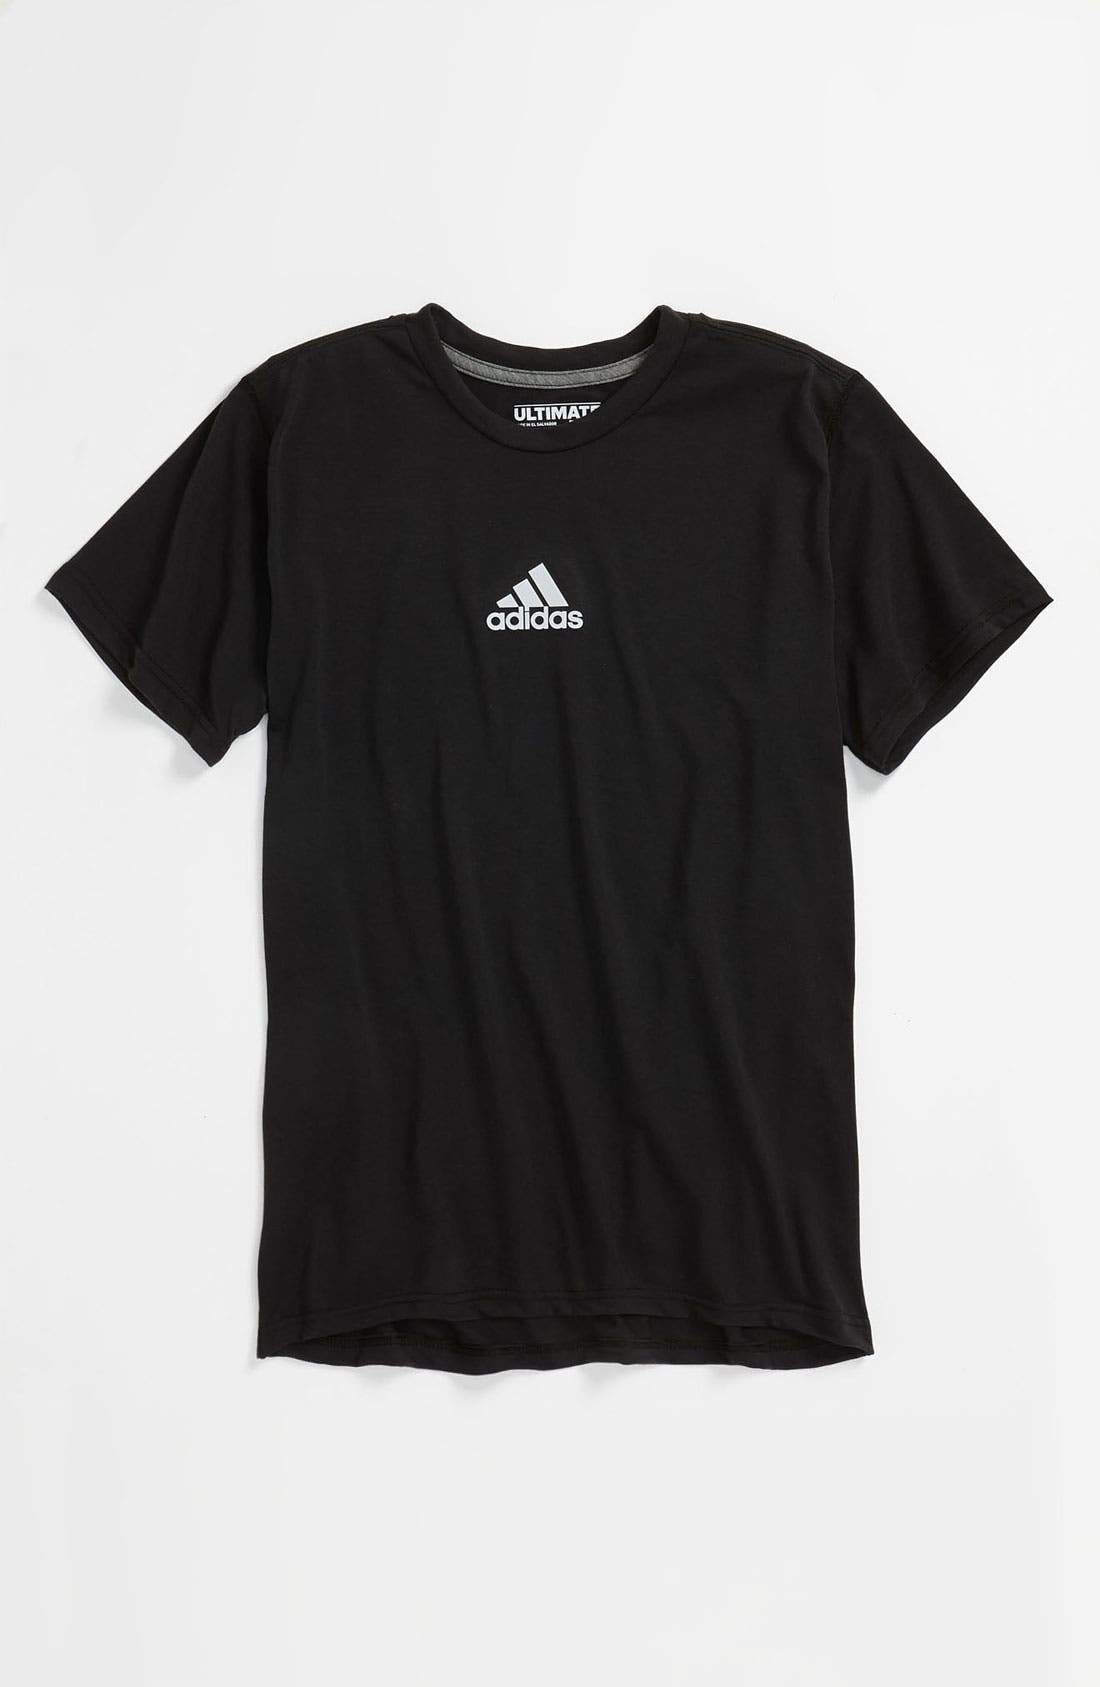 Main Image - adidas 'Ultimate' T-Shirt (Big Boys)